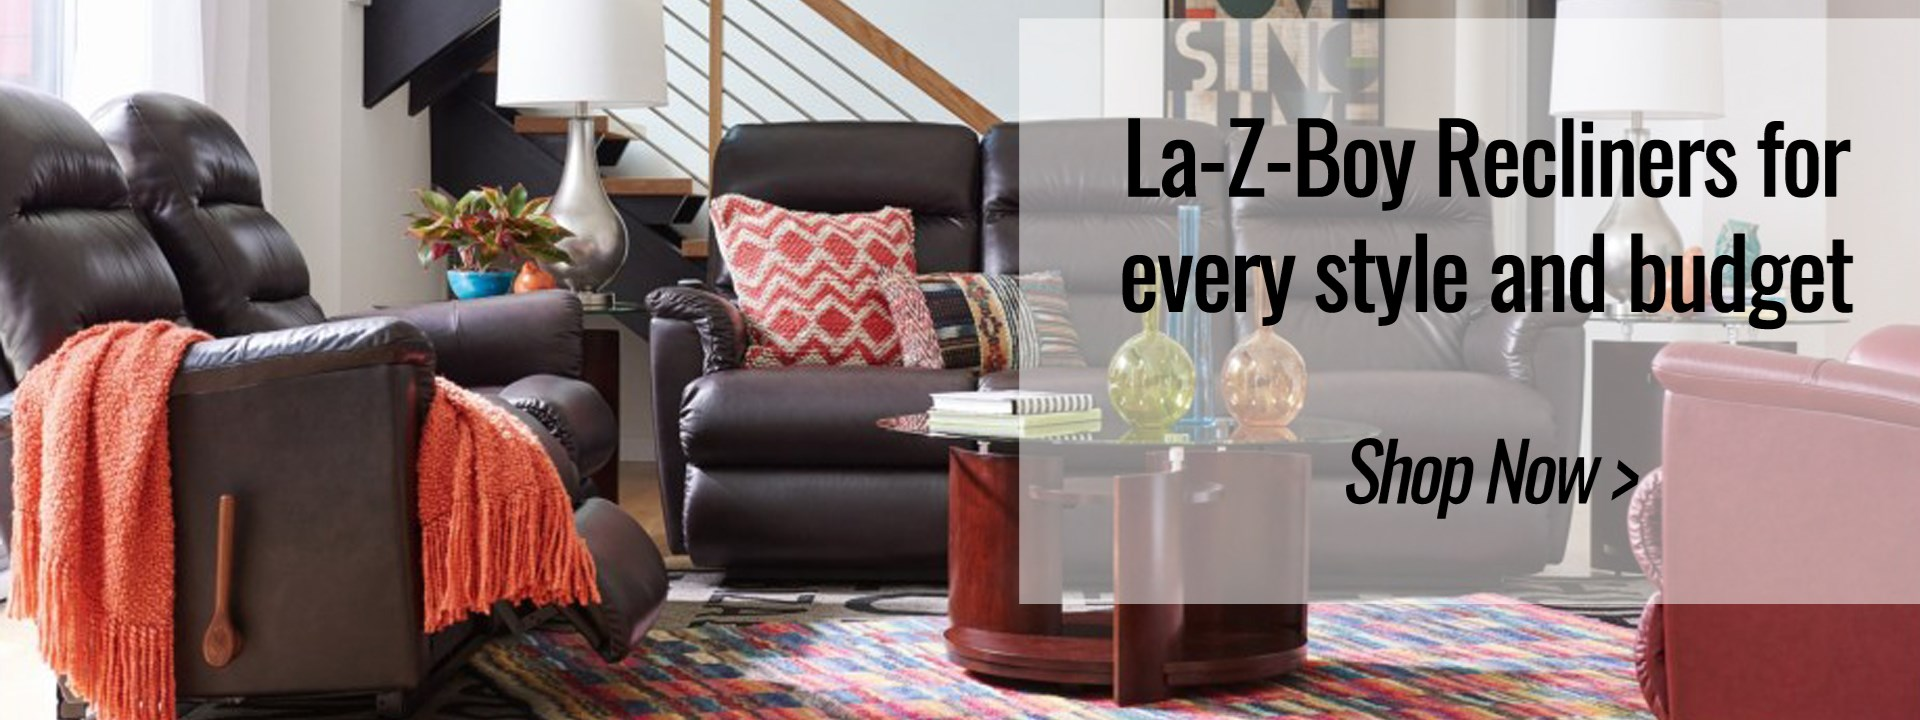 La-Z-Boy Recliners for every style and budget | Shop Now